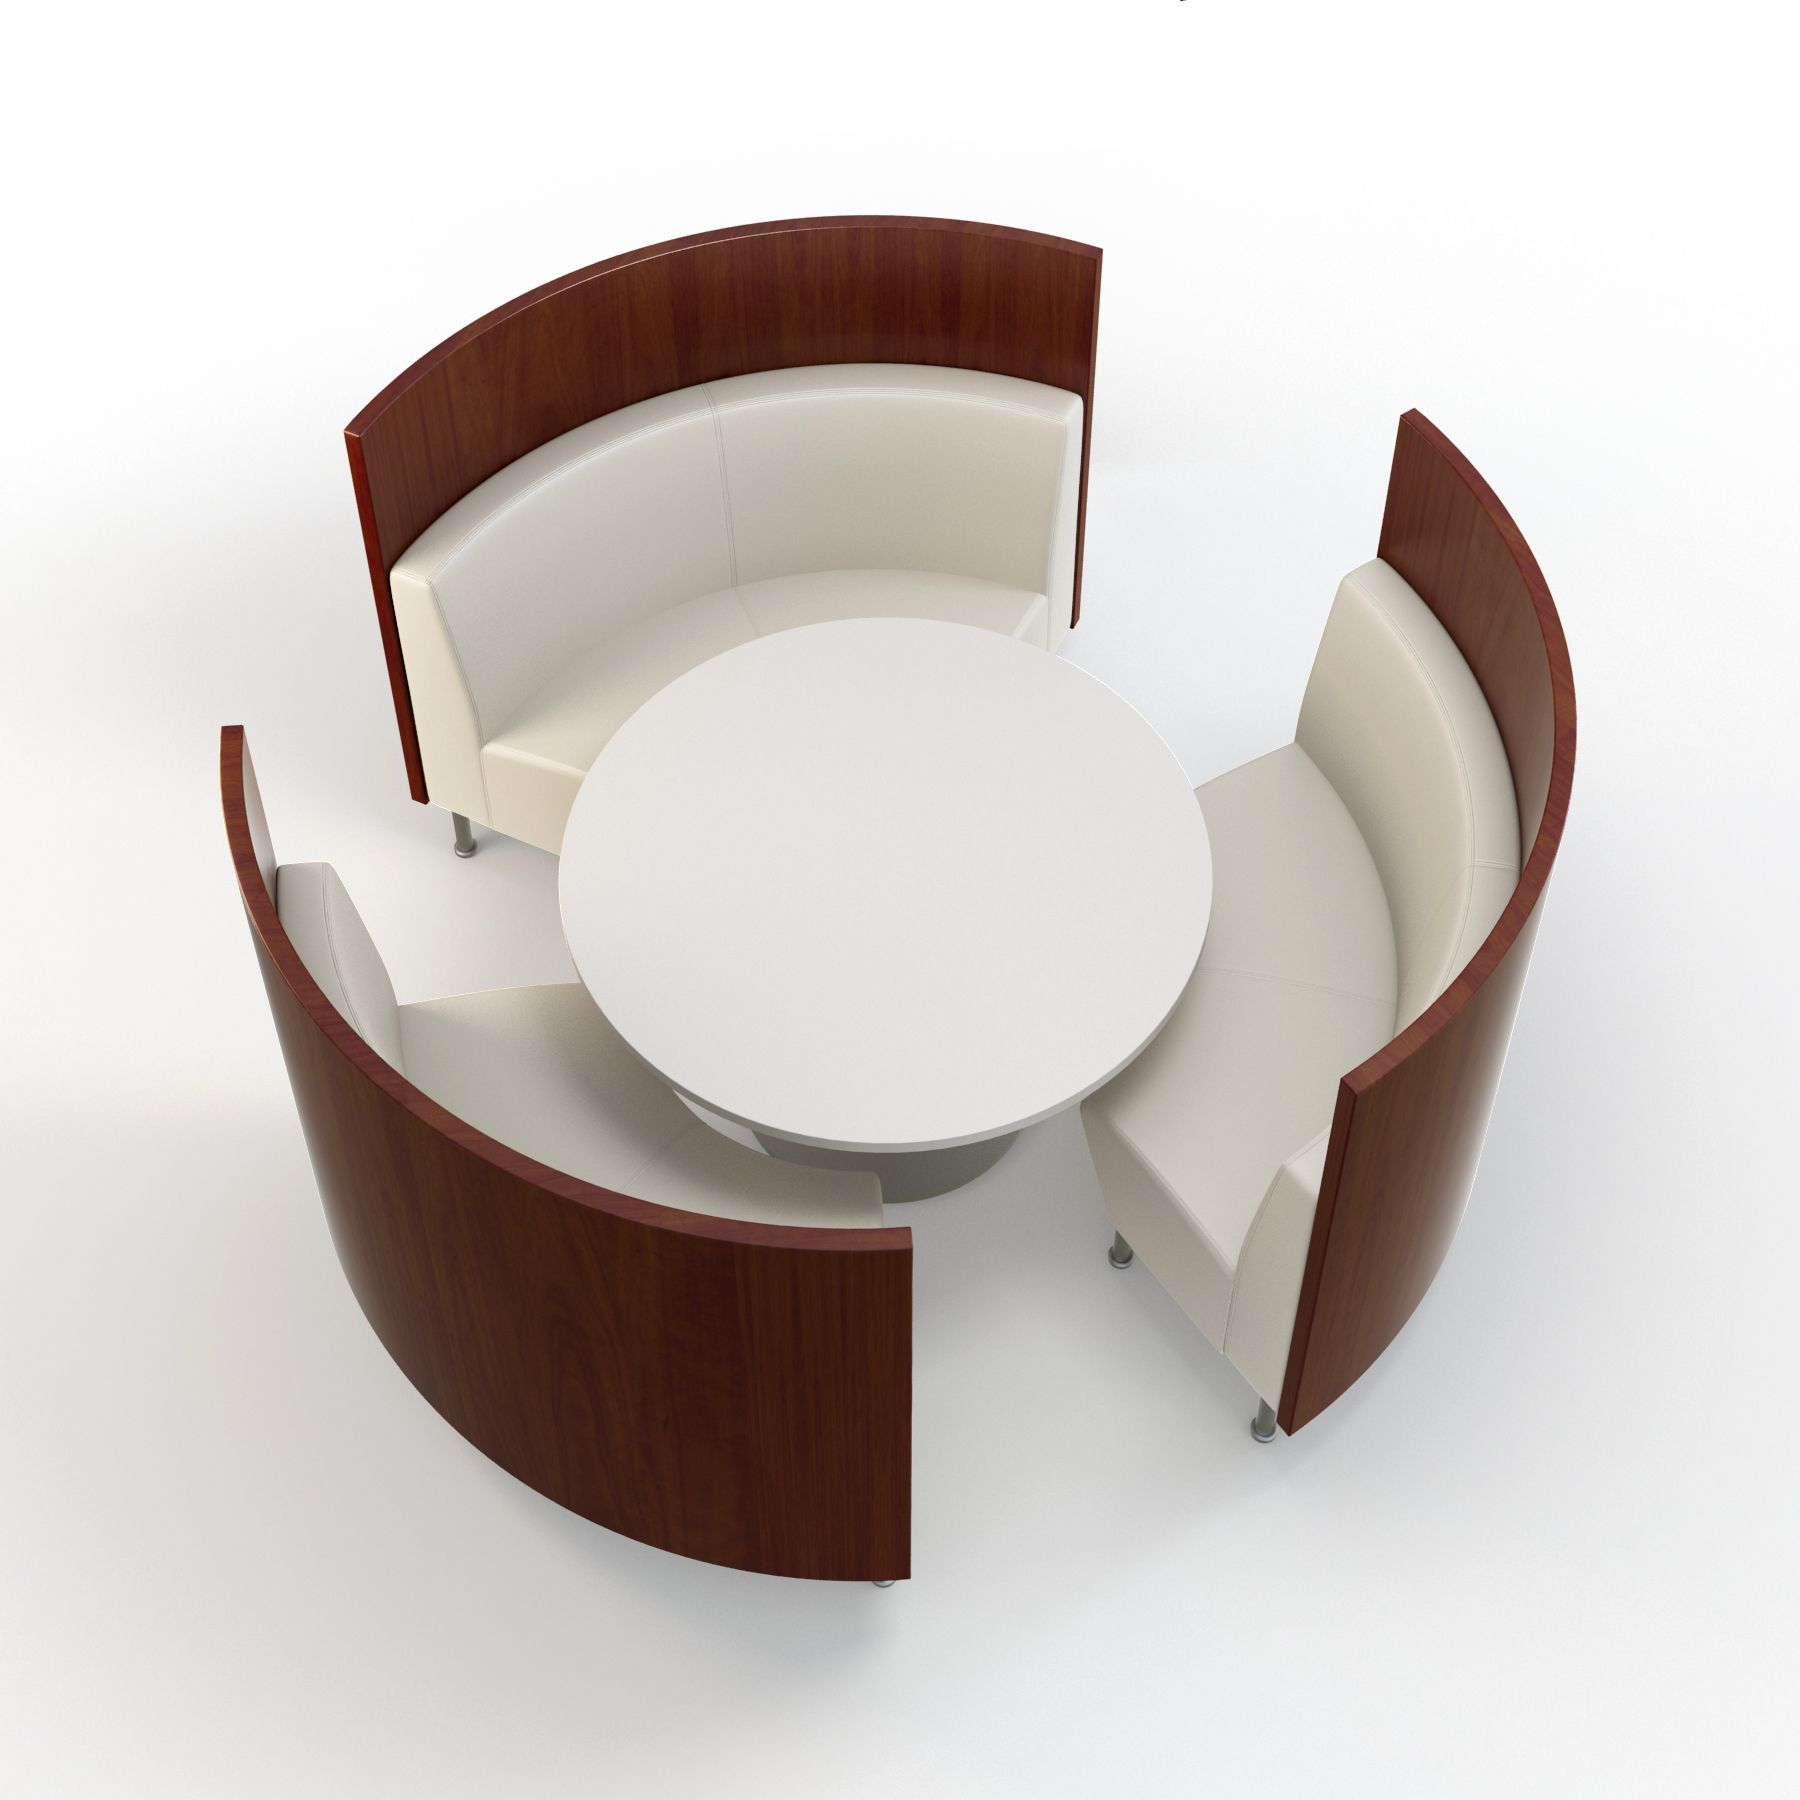 Sculpture of Intimate and Affectionate Dining Atmospheres with